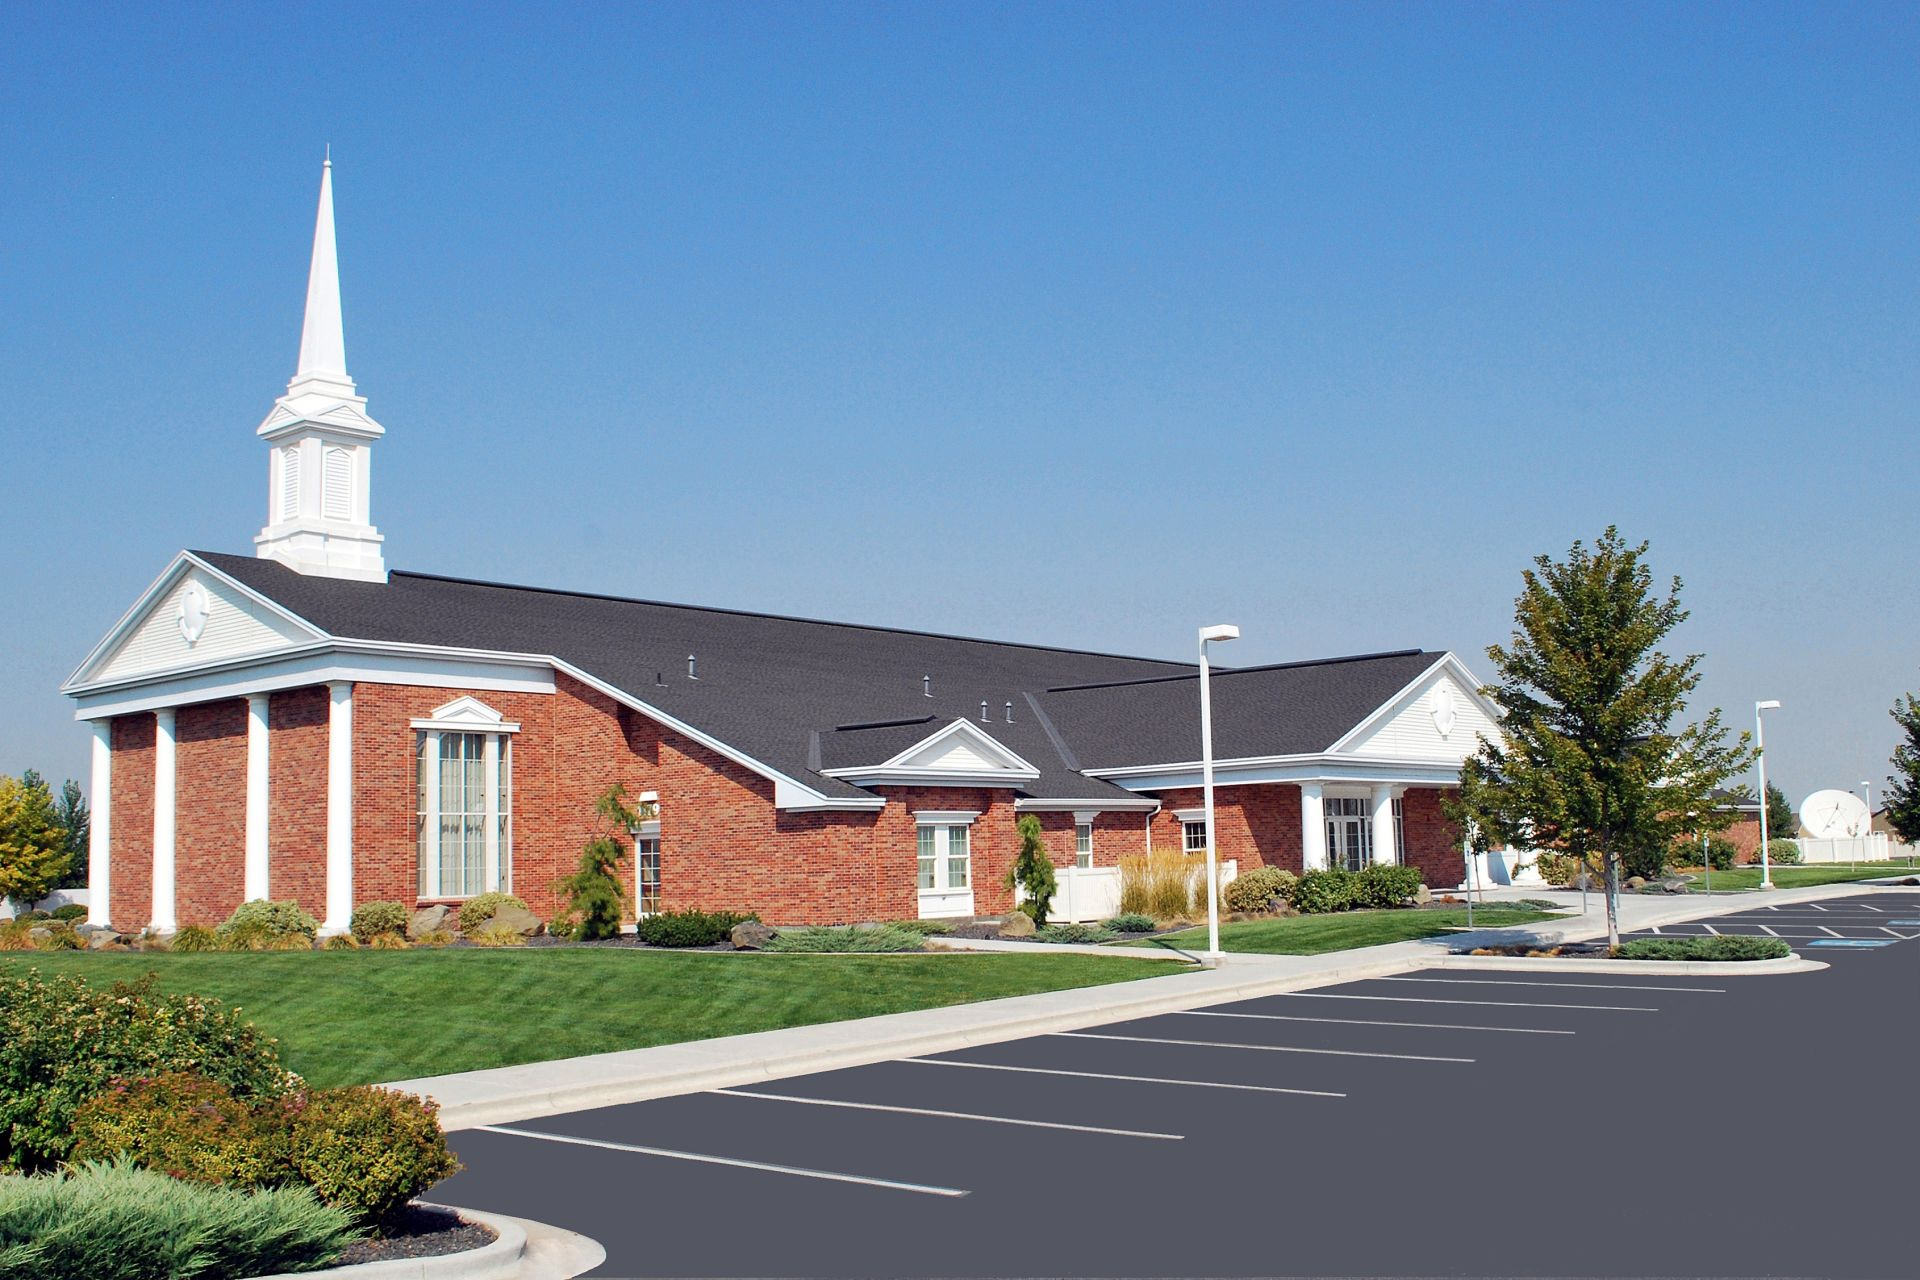 If Mormons could just hang out in the church building